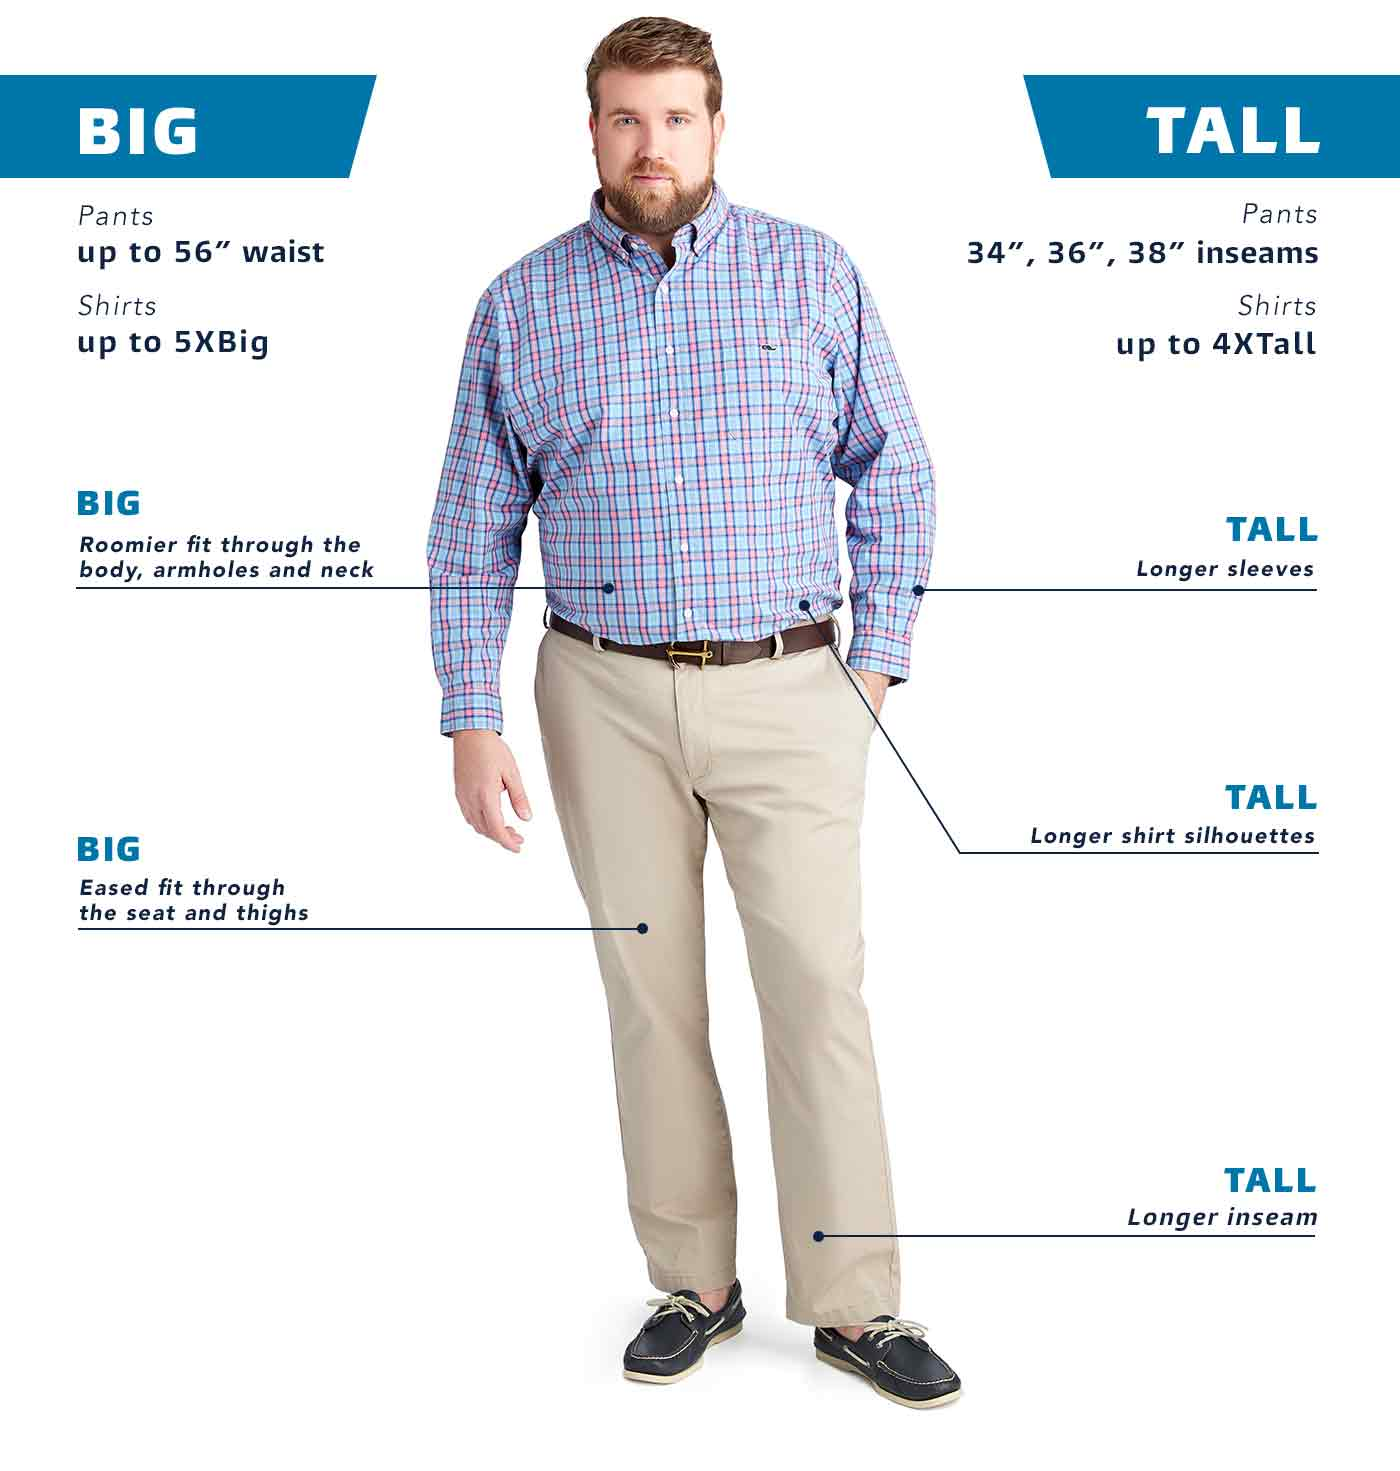 57e29e8ebd Big and Tall Fit Guide. We offer Pants up to 56 inch waist and shirts